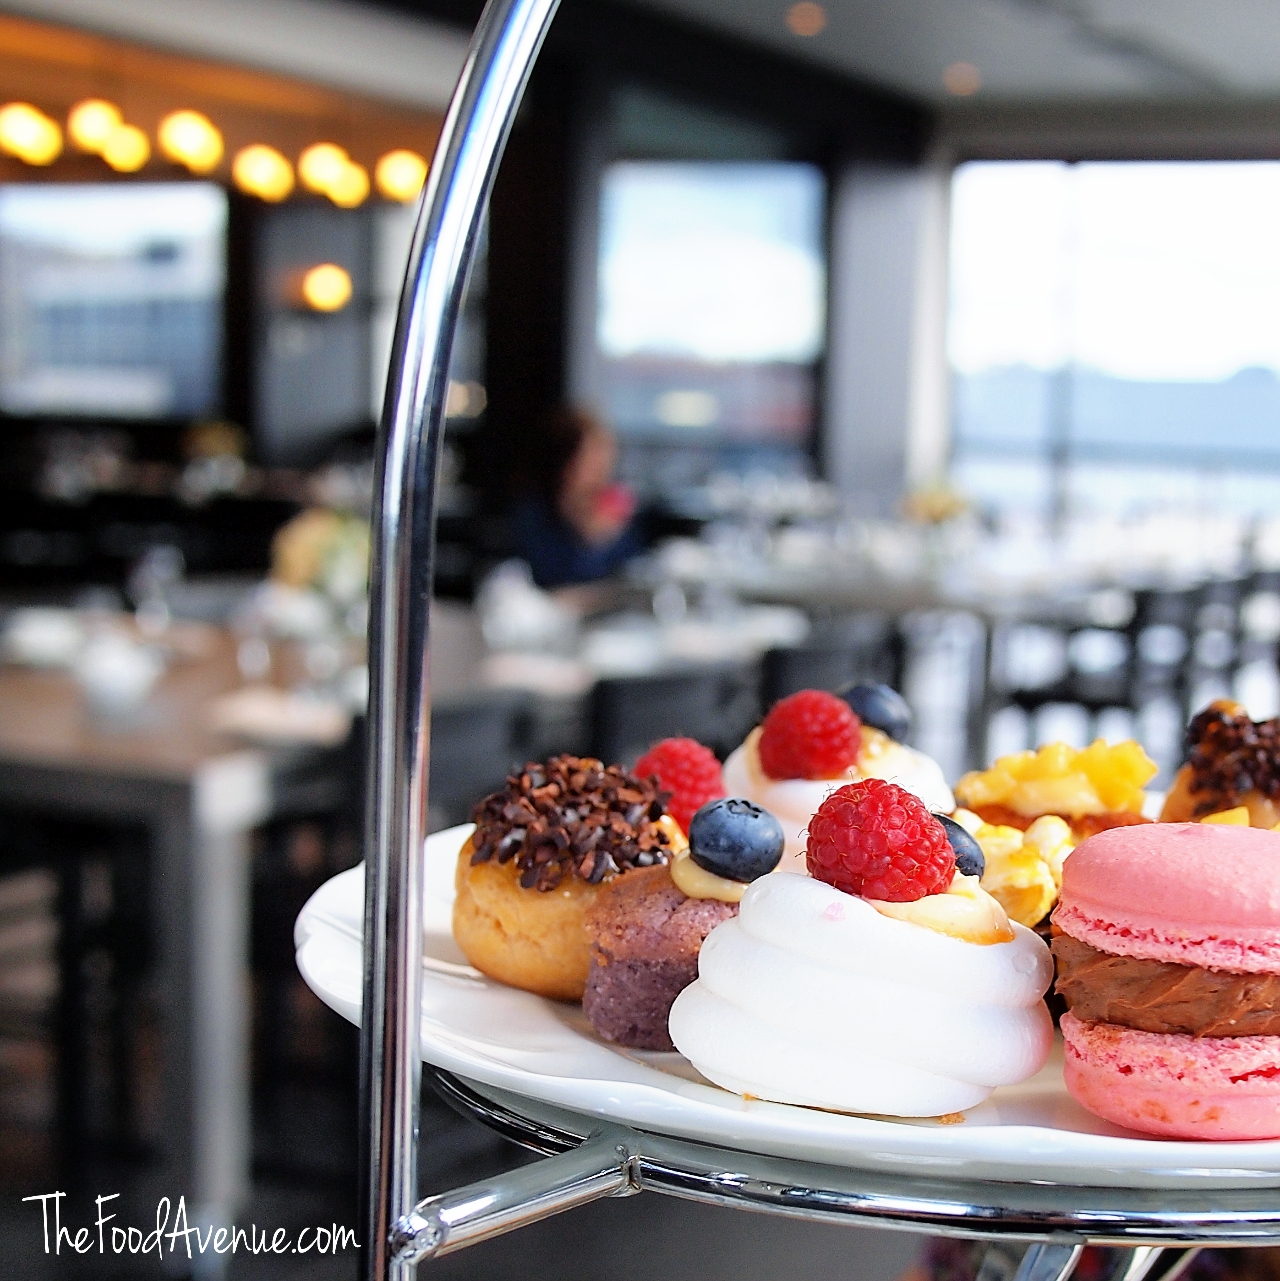 The_Food_Avenue_Burbury_Hotel_High_Tea.jpg